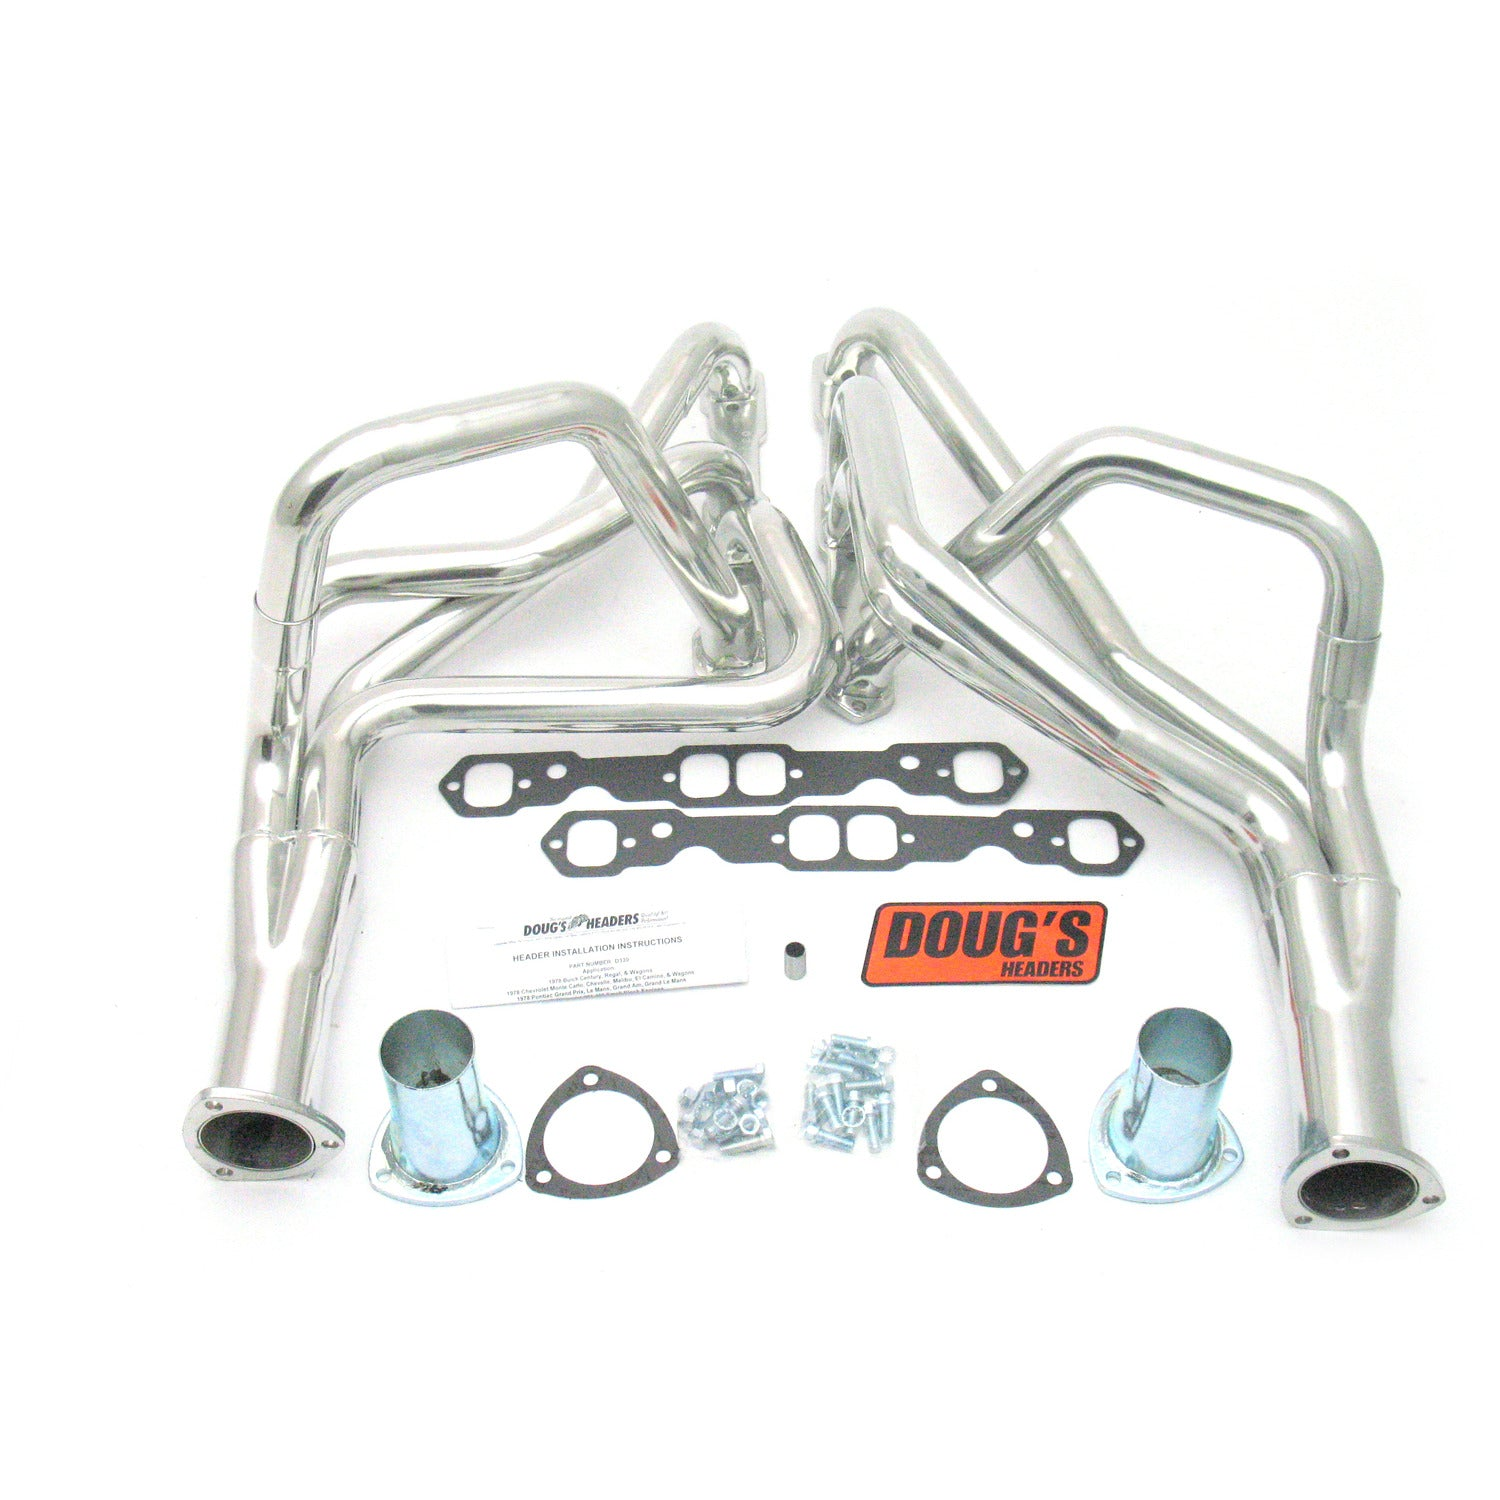 "Doug's Headers D330 1 3/4"" 4-Tube Full Length Header Chevelle Small Block Chevrolet 78-87 Metallic Ceramic Coating"